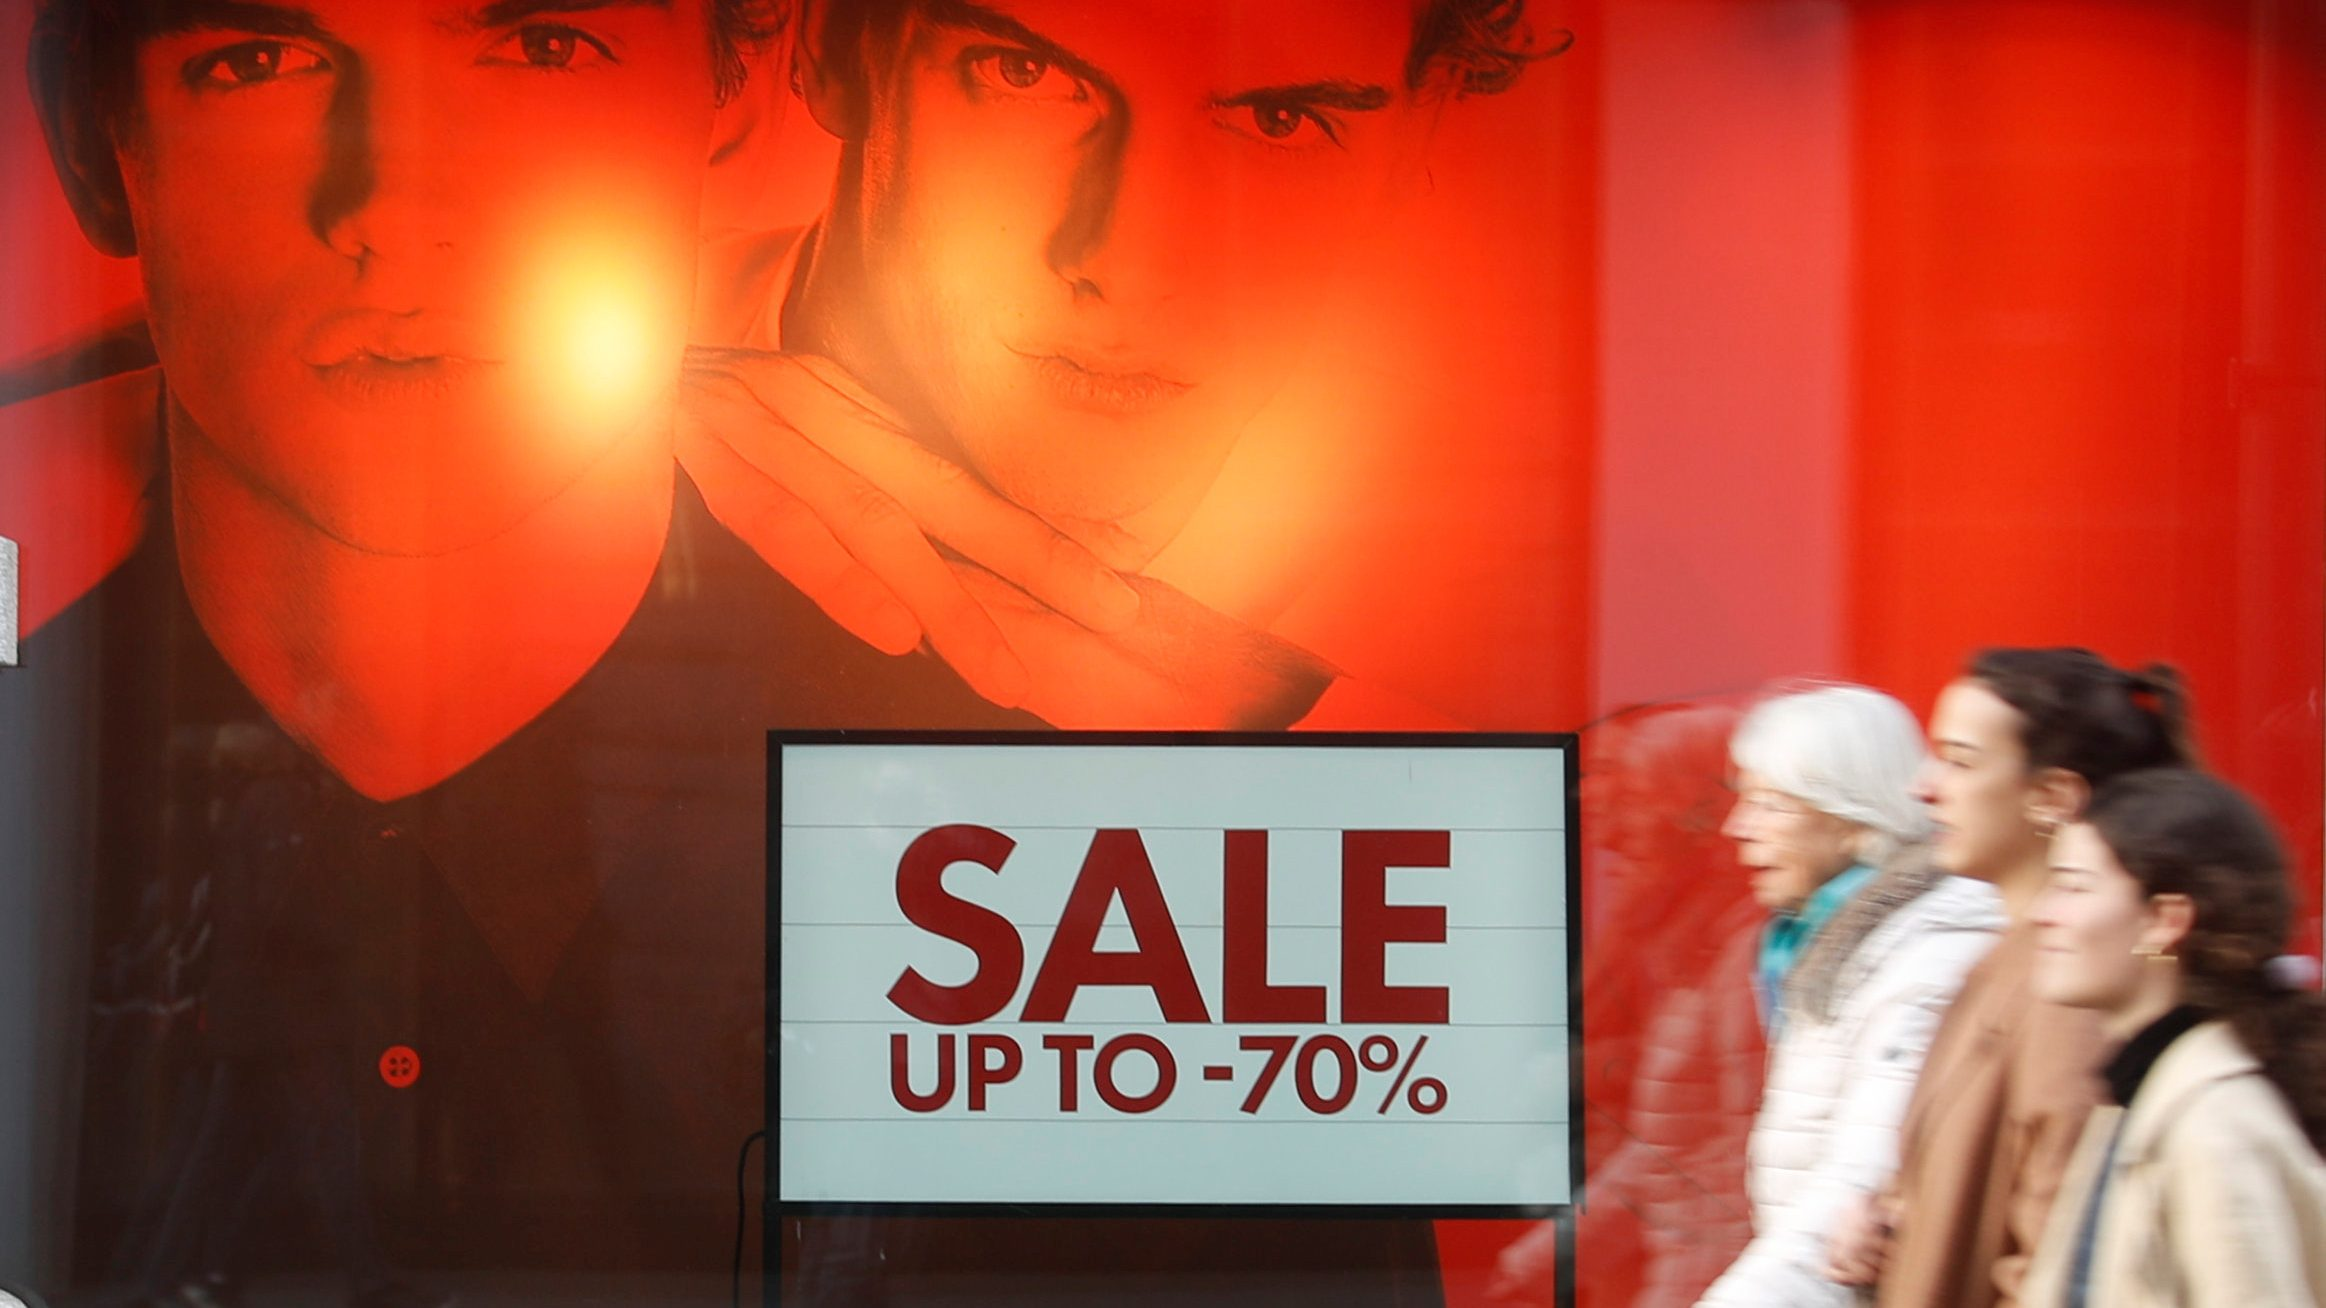 A sale is advertised in a fashion store's window display